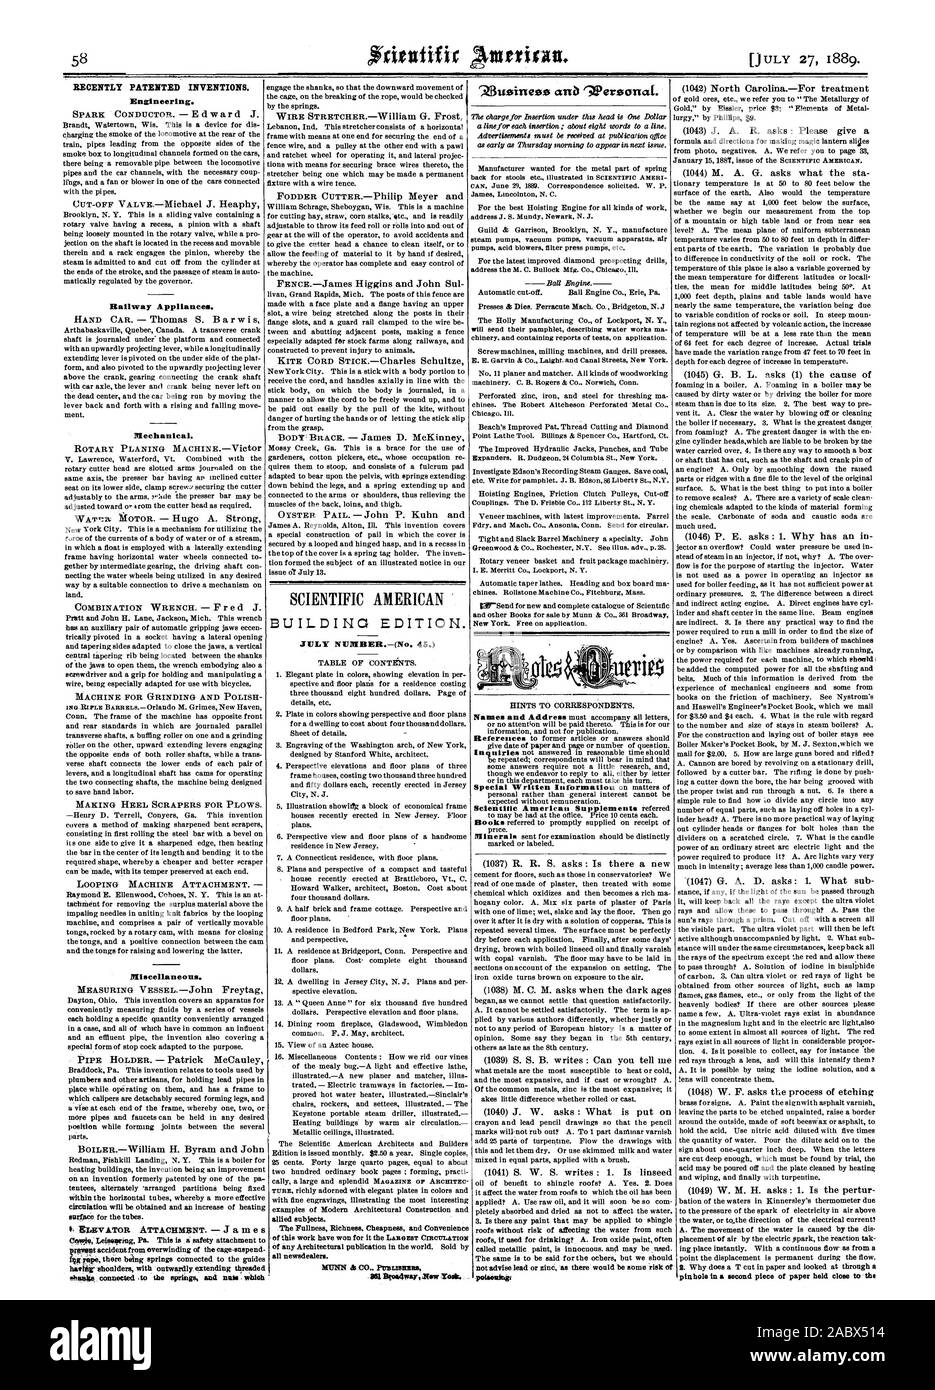 RECENTLY PATENTED INVENTIONS. Engineering. Hallway Appliances. Mechanical. Miscellaneous. BUILDING EDITION. JULY NUMBER.-(No. 45.) all newsdealer rZ3usines3ss anb 'APeroanai. poisoning', scientific american, 1889-07-11 Stock Photo